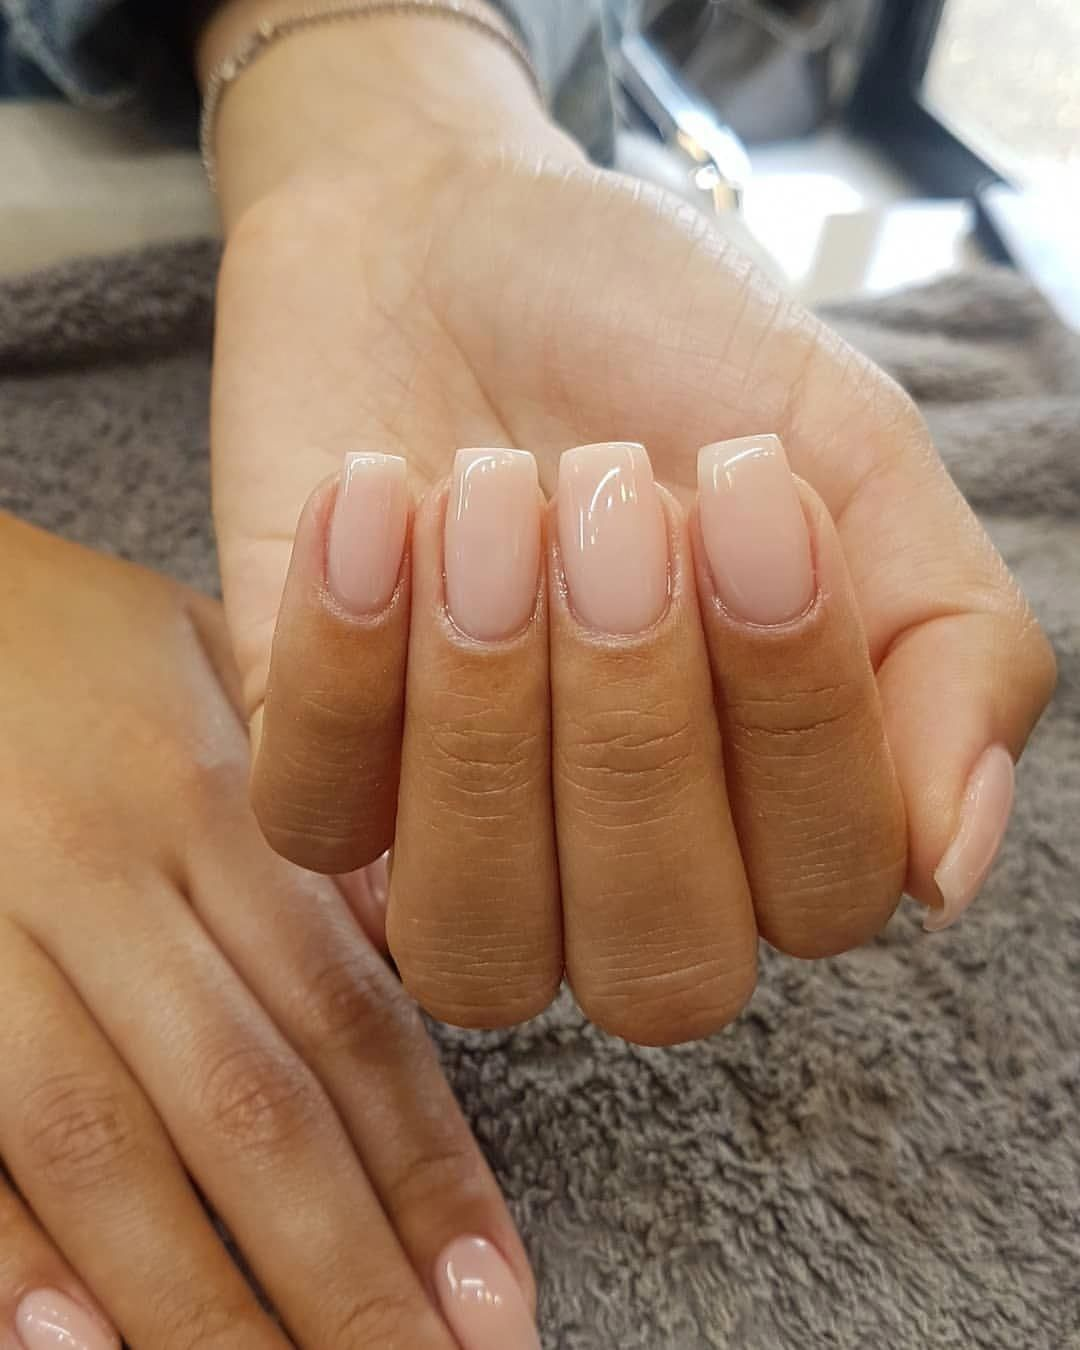 Nails Check Out The Best Nail Post Tip Ref 1846285117 For Simply Cute Nails Neonnailsombre In 2020 Gorgeous Nails Pretty Nails Gel Nails